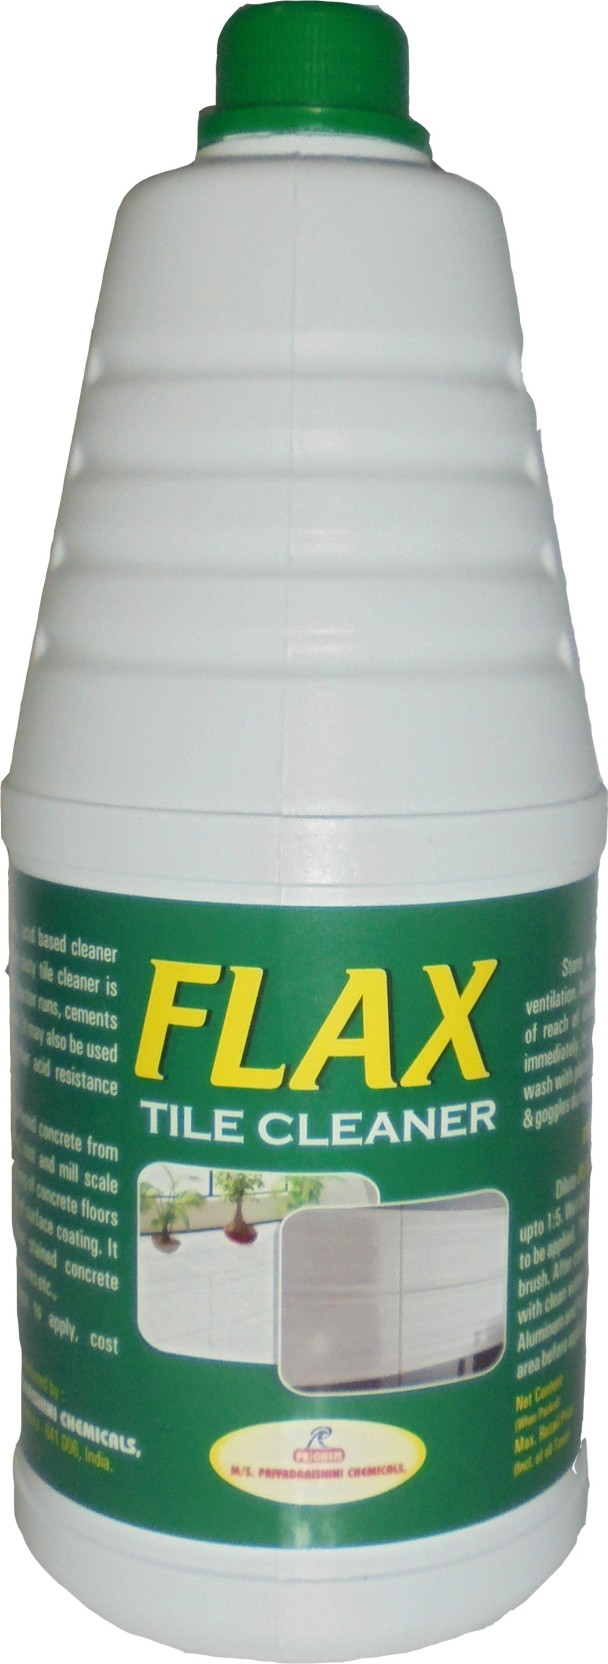 Flax Tile Stain Remover Regular Bathroom Floor Cleaner Price In   Bathroom  Stain Remover